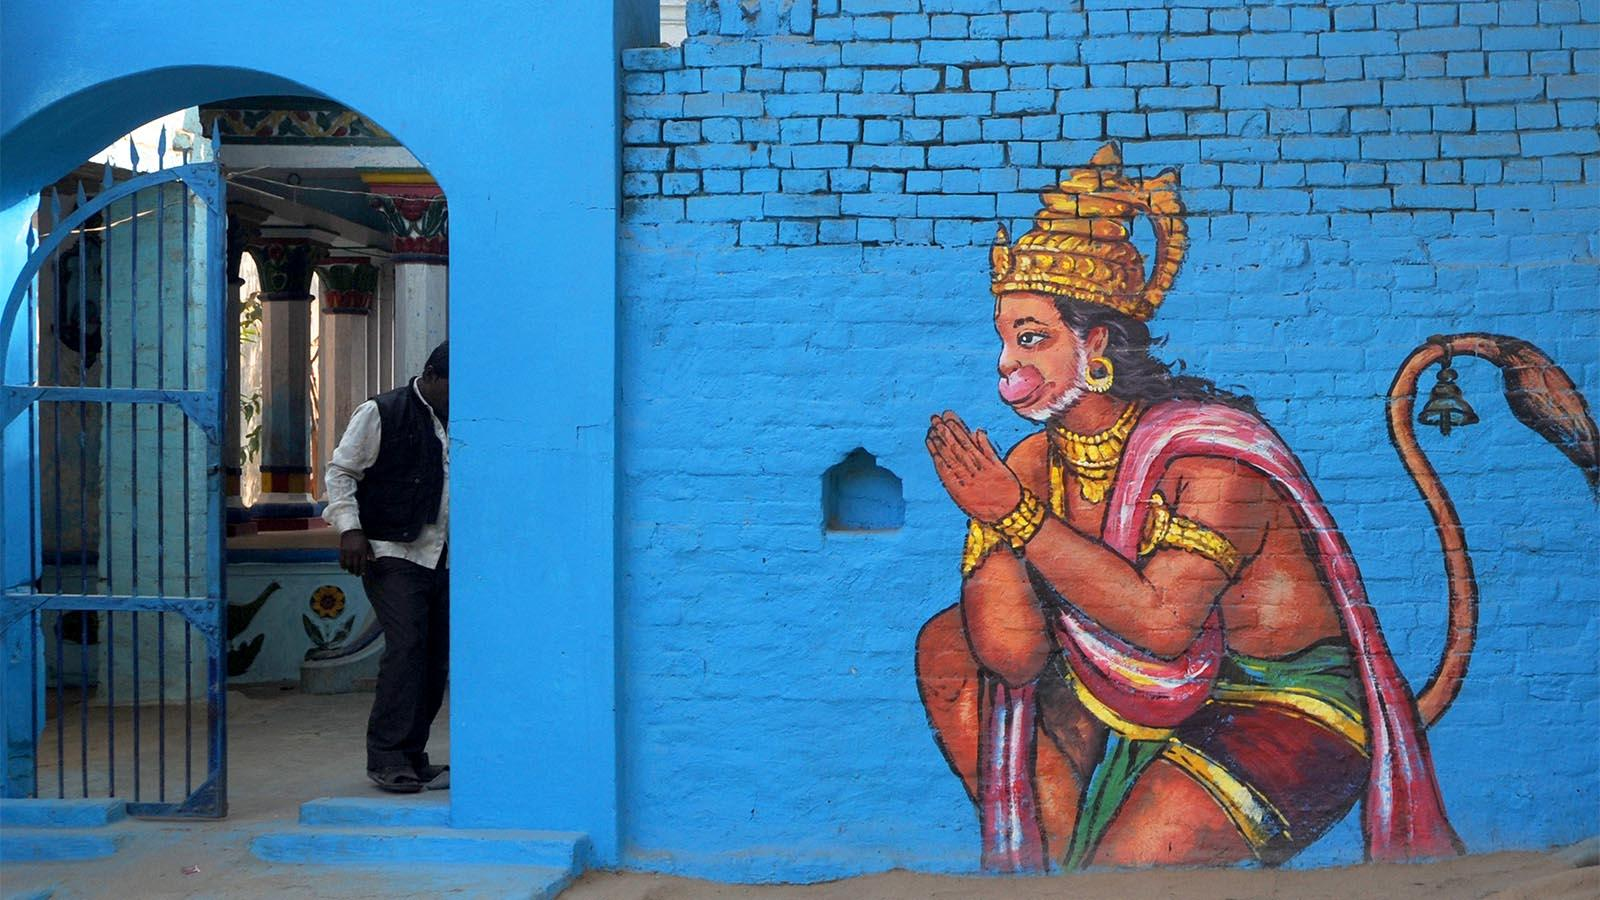 Hanuman adorns a wall